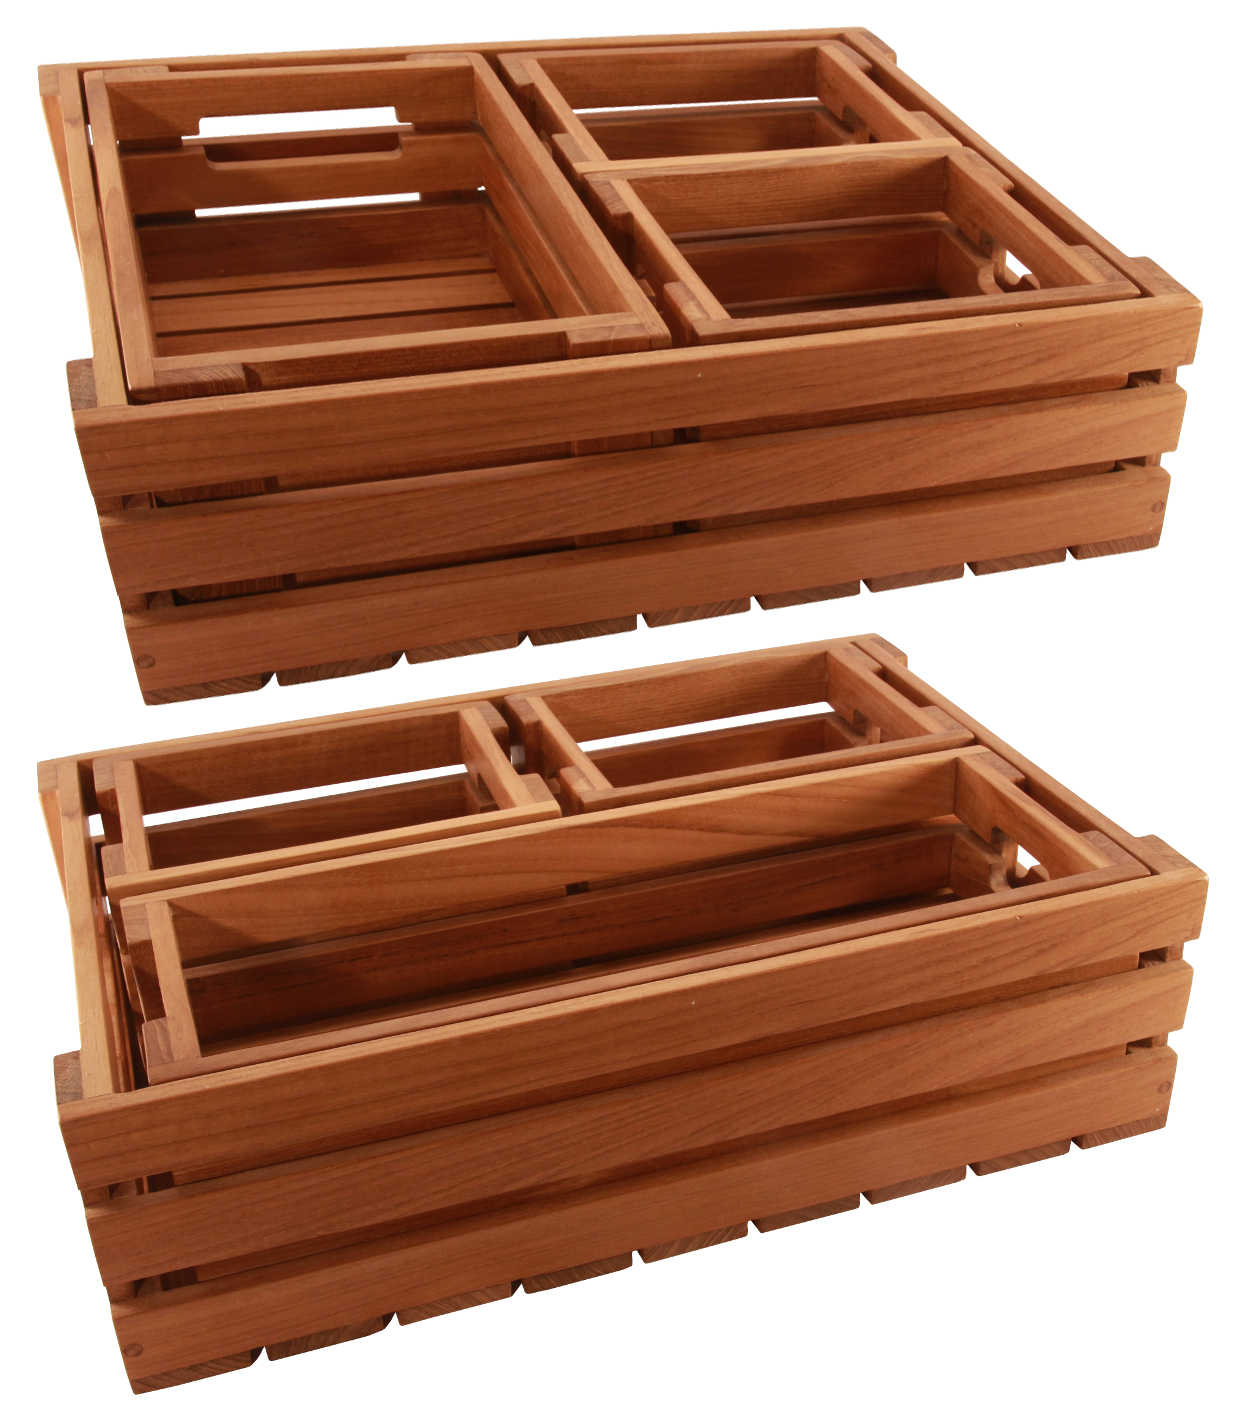 Storage boxes EUDE Nautic – Model D 20x14x12cm